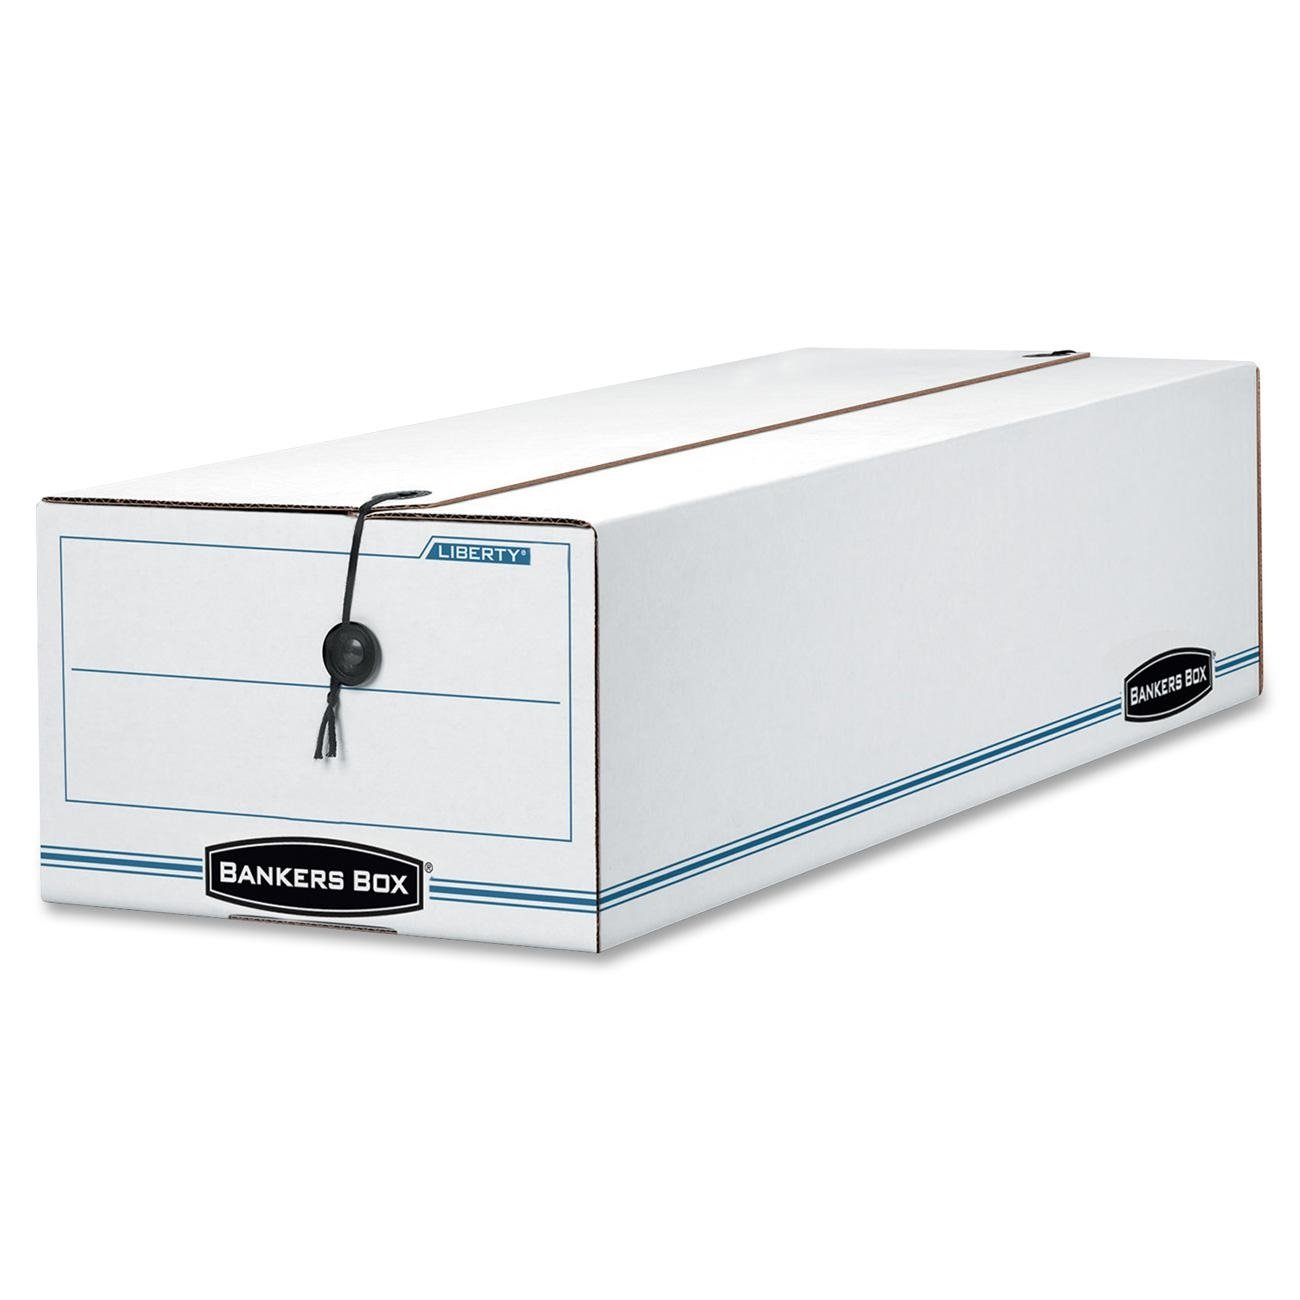 Bankers Box Liberty Check and Form Boxes, Check, 4.25'' x 6'' x 23.25'', 12 Pack (00003) by Bankers Box